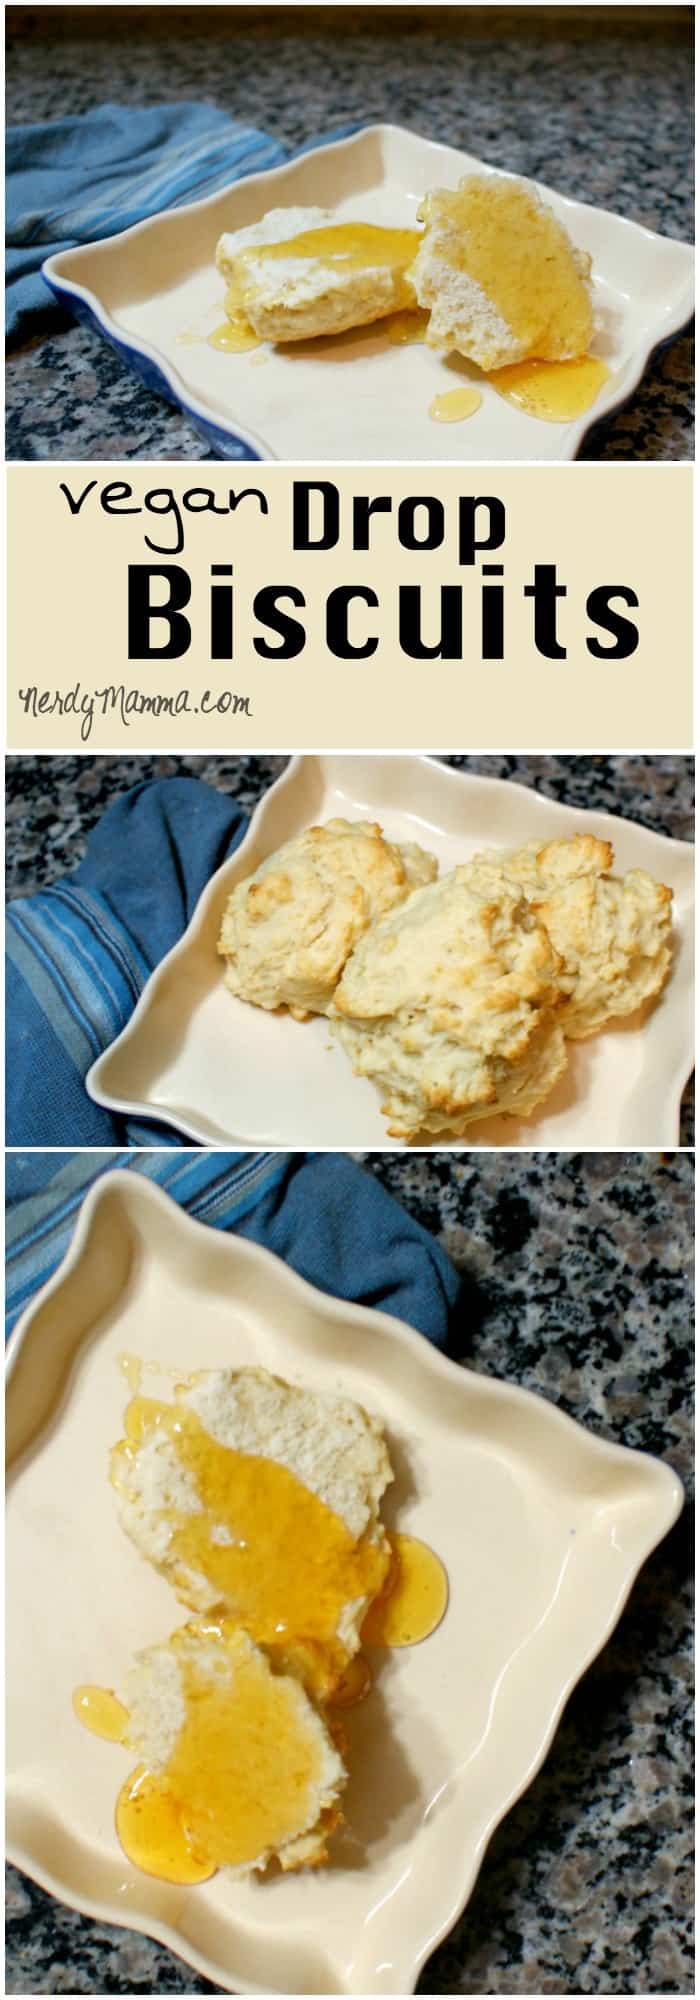 My kids love it when I make these homemade dairy-free biscuits. The recipe is so